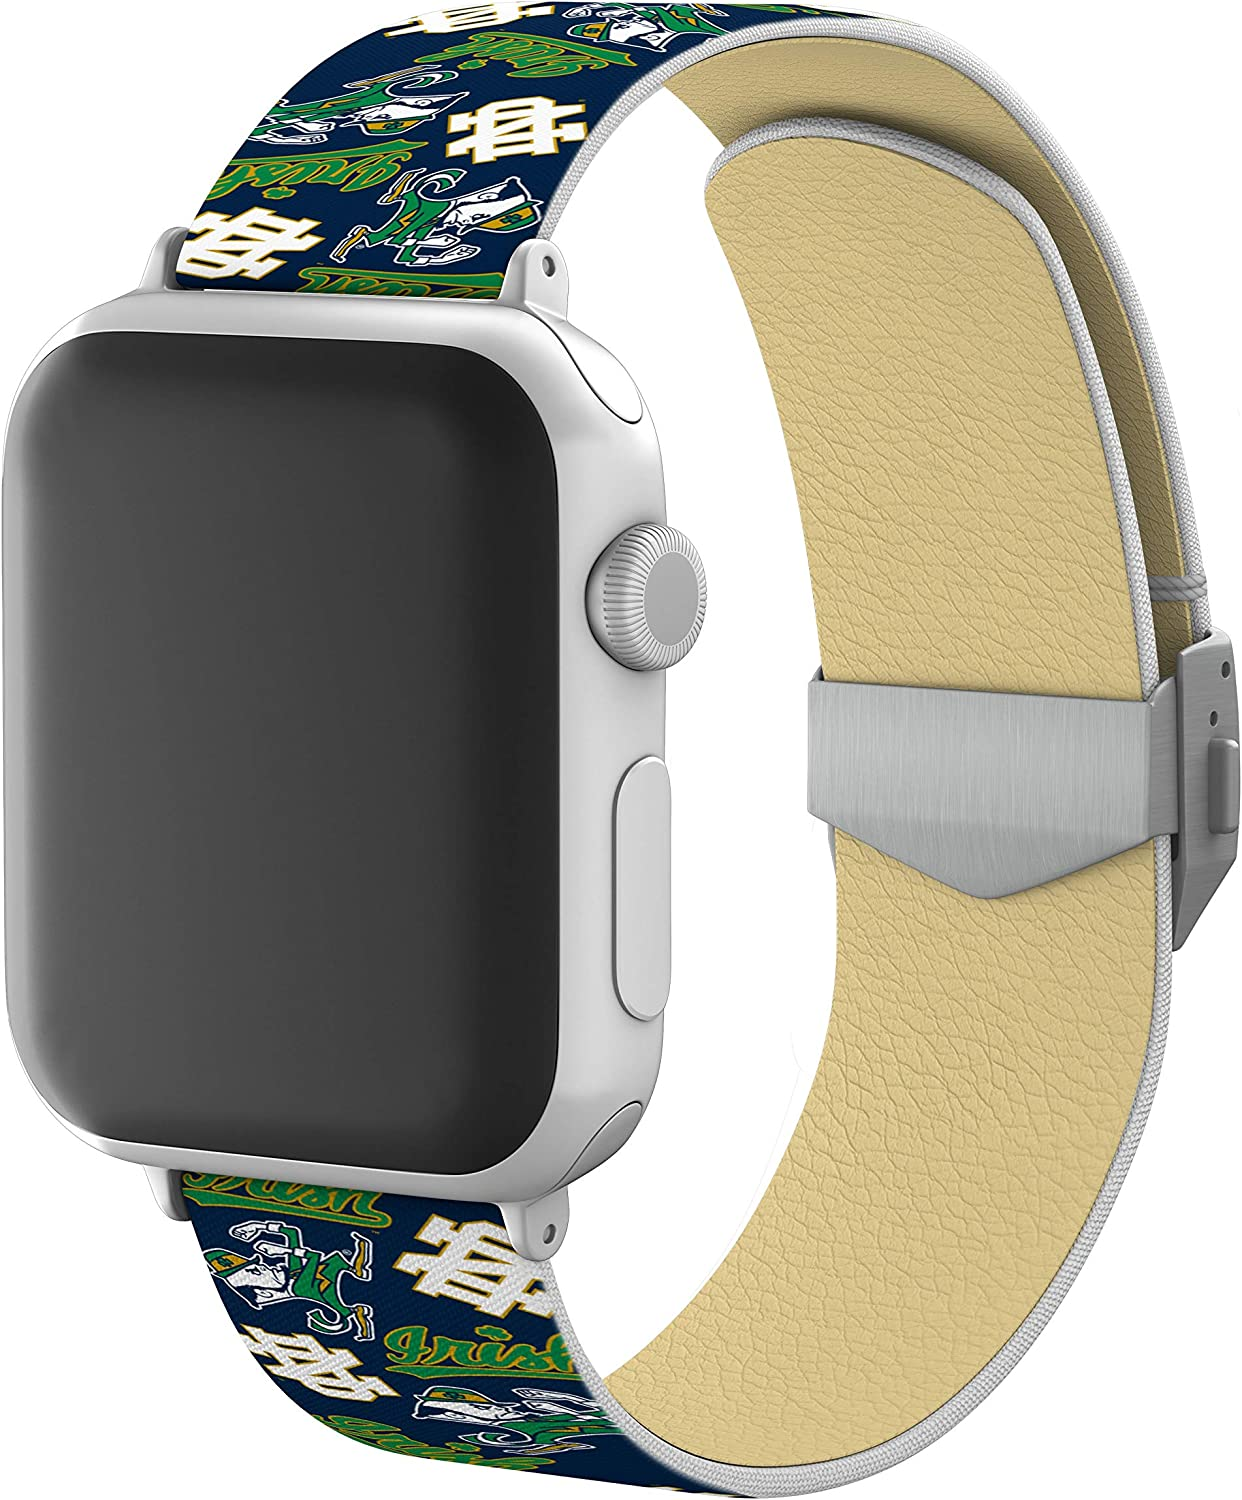 AFFINITY BANDS Notre Dame Fighting Irish Full Print Watch Band with Engraved Buckle Compatible with Apple Watch - 42mm/44mm Random Logo